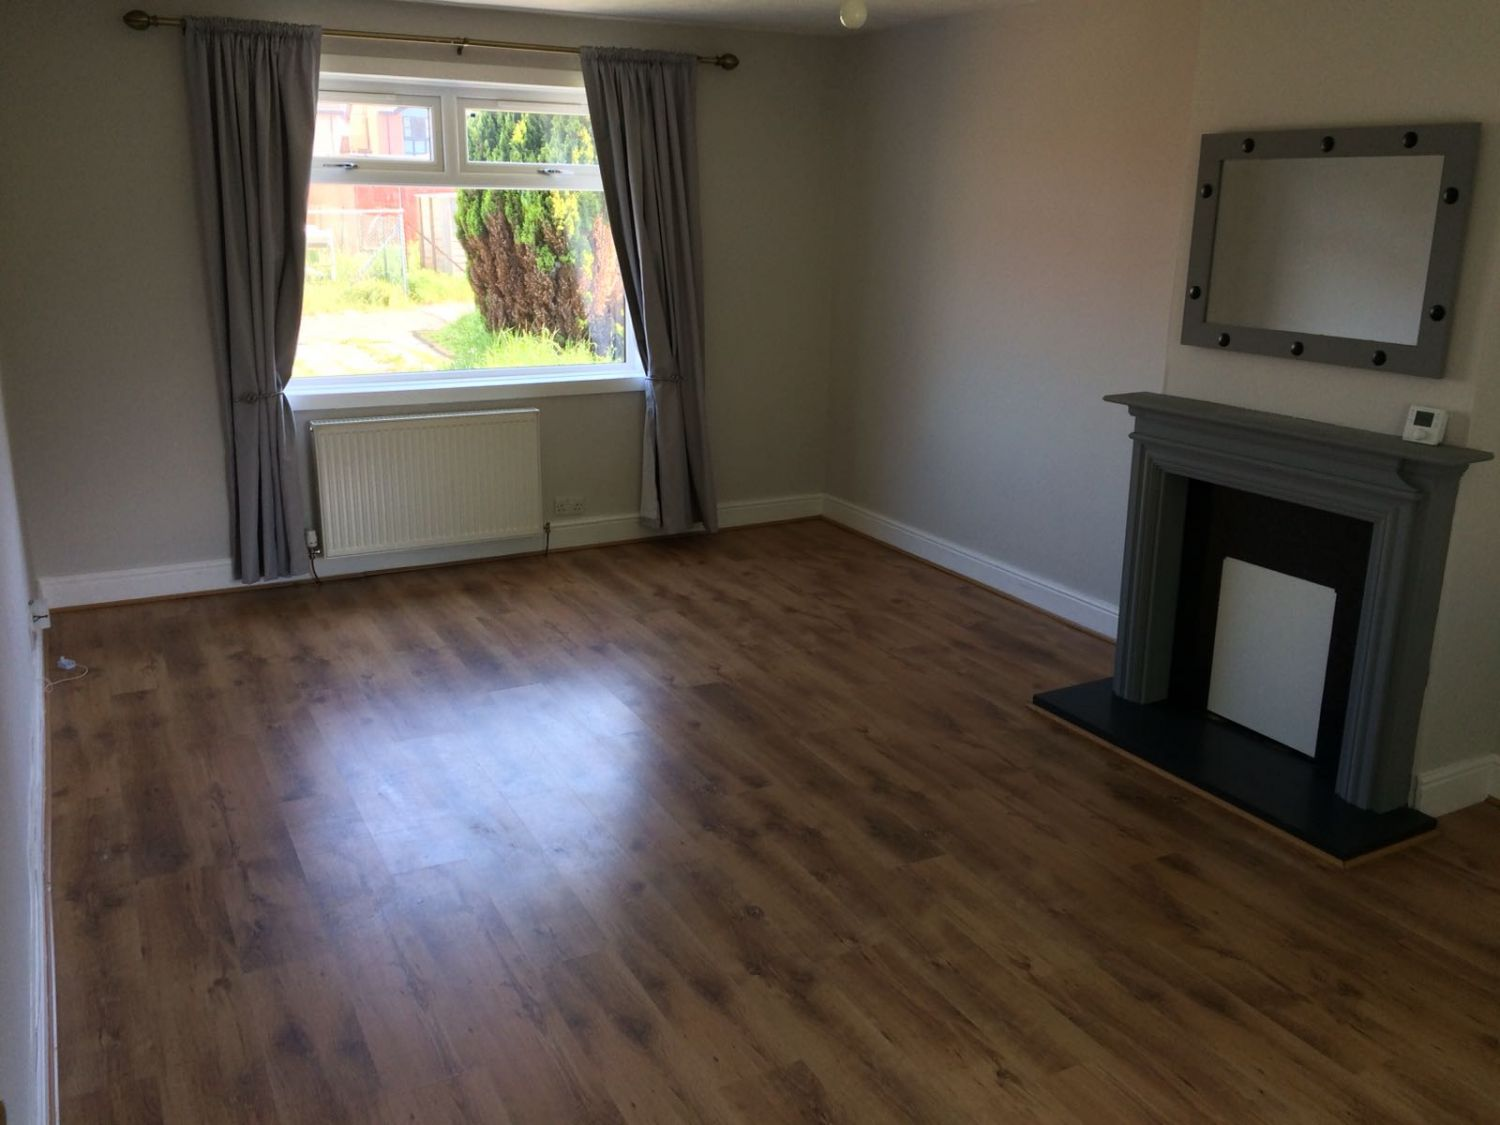 225 Inchkeith Drive, Dunfermline Lounge